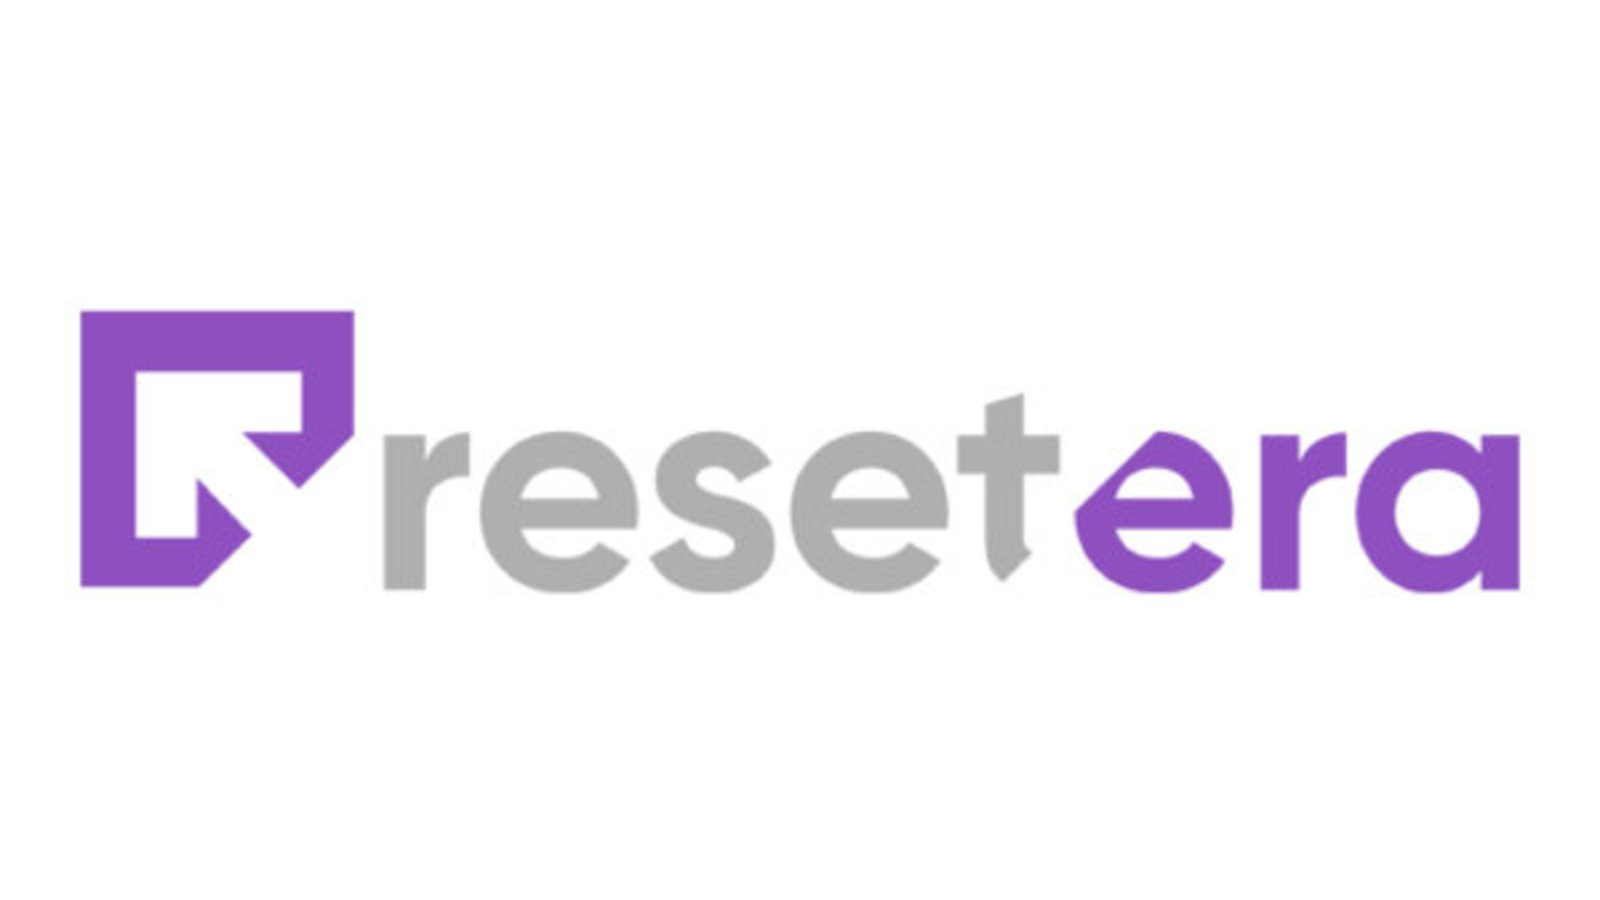 Gaming Forum ResetEra Has Been Acquired By M.O.B.A. Network